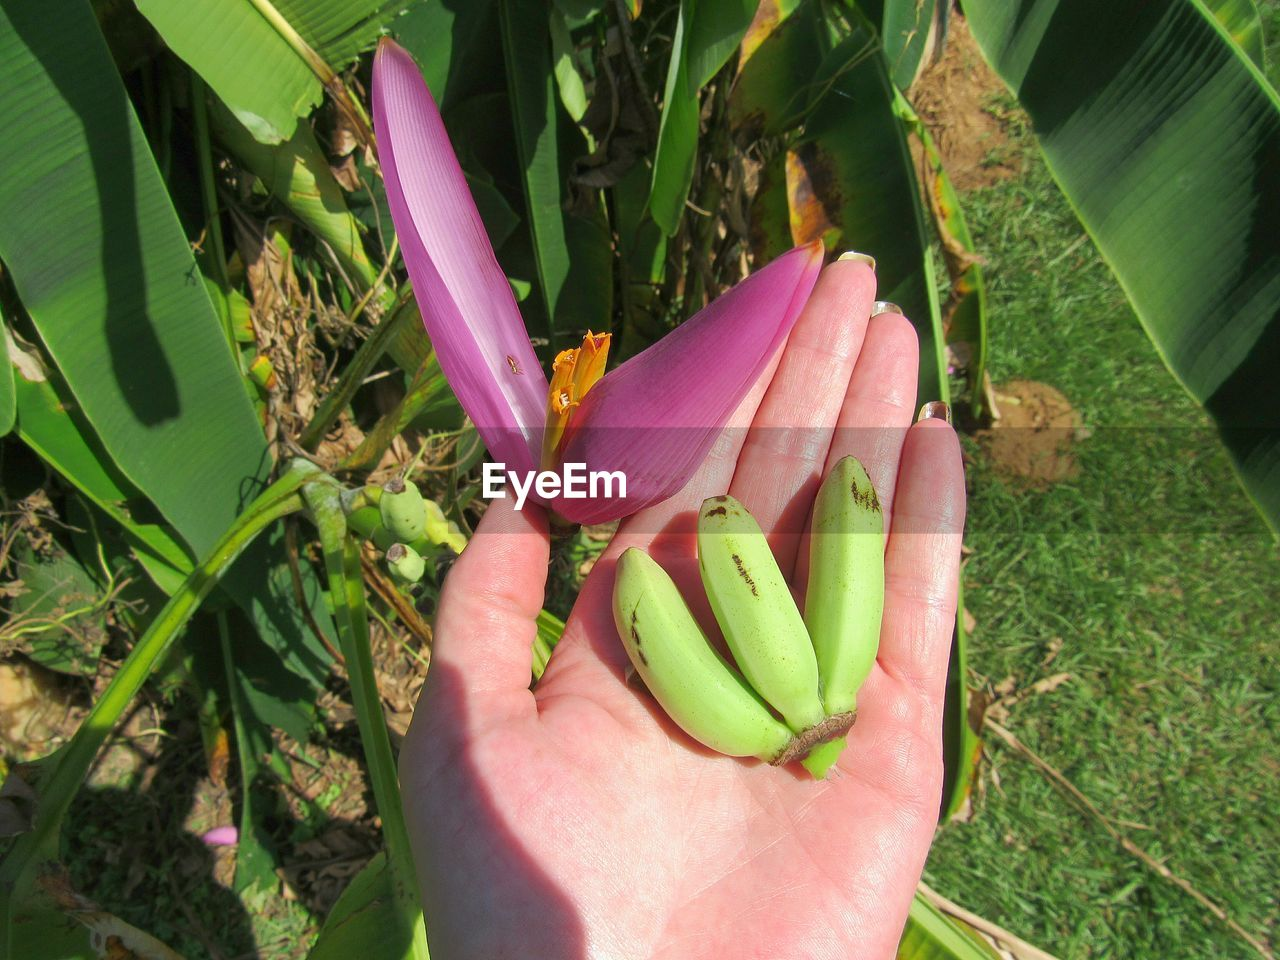 plant, human hand, freshness, hand, holding, growth, real people, human body part, nature, close-up, green color, day, one person, flower, flowering plant, plant part, pink color, food, unrecognizable person, food and drink, outdoors, finger